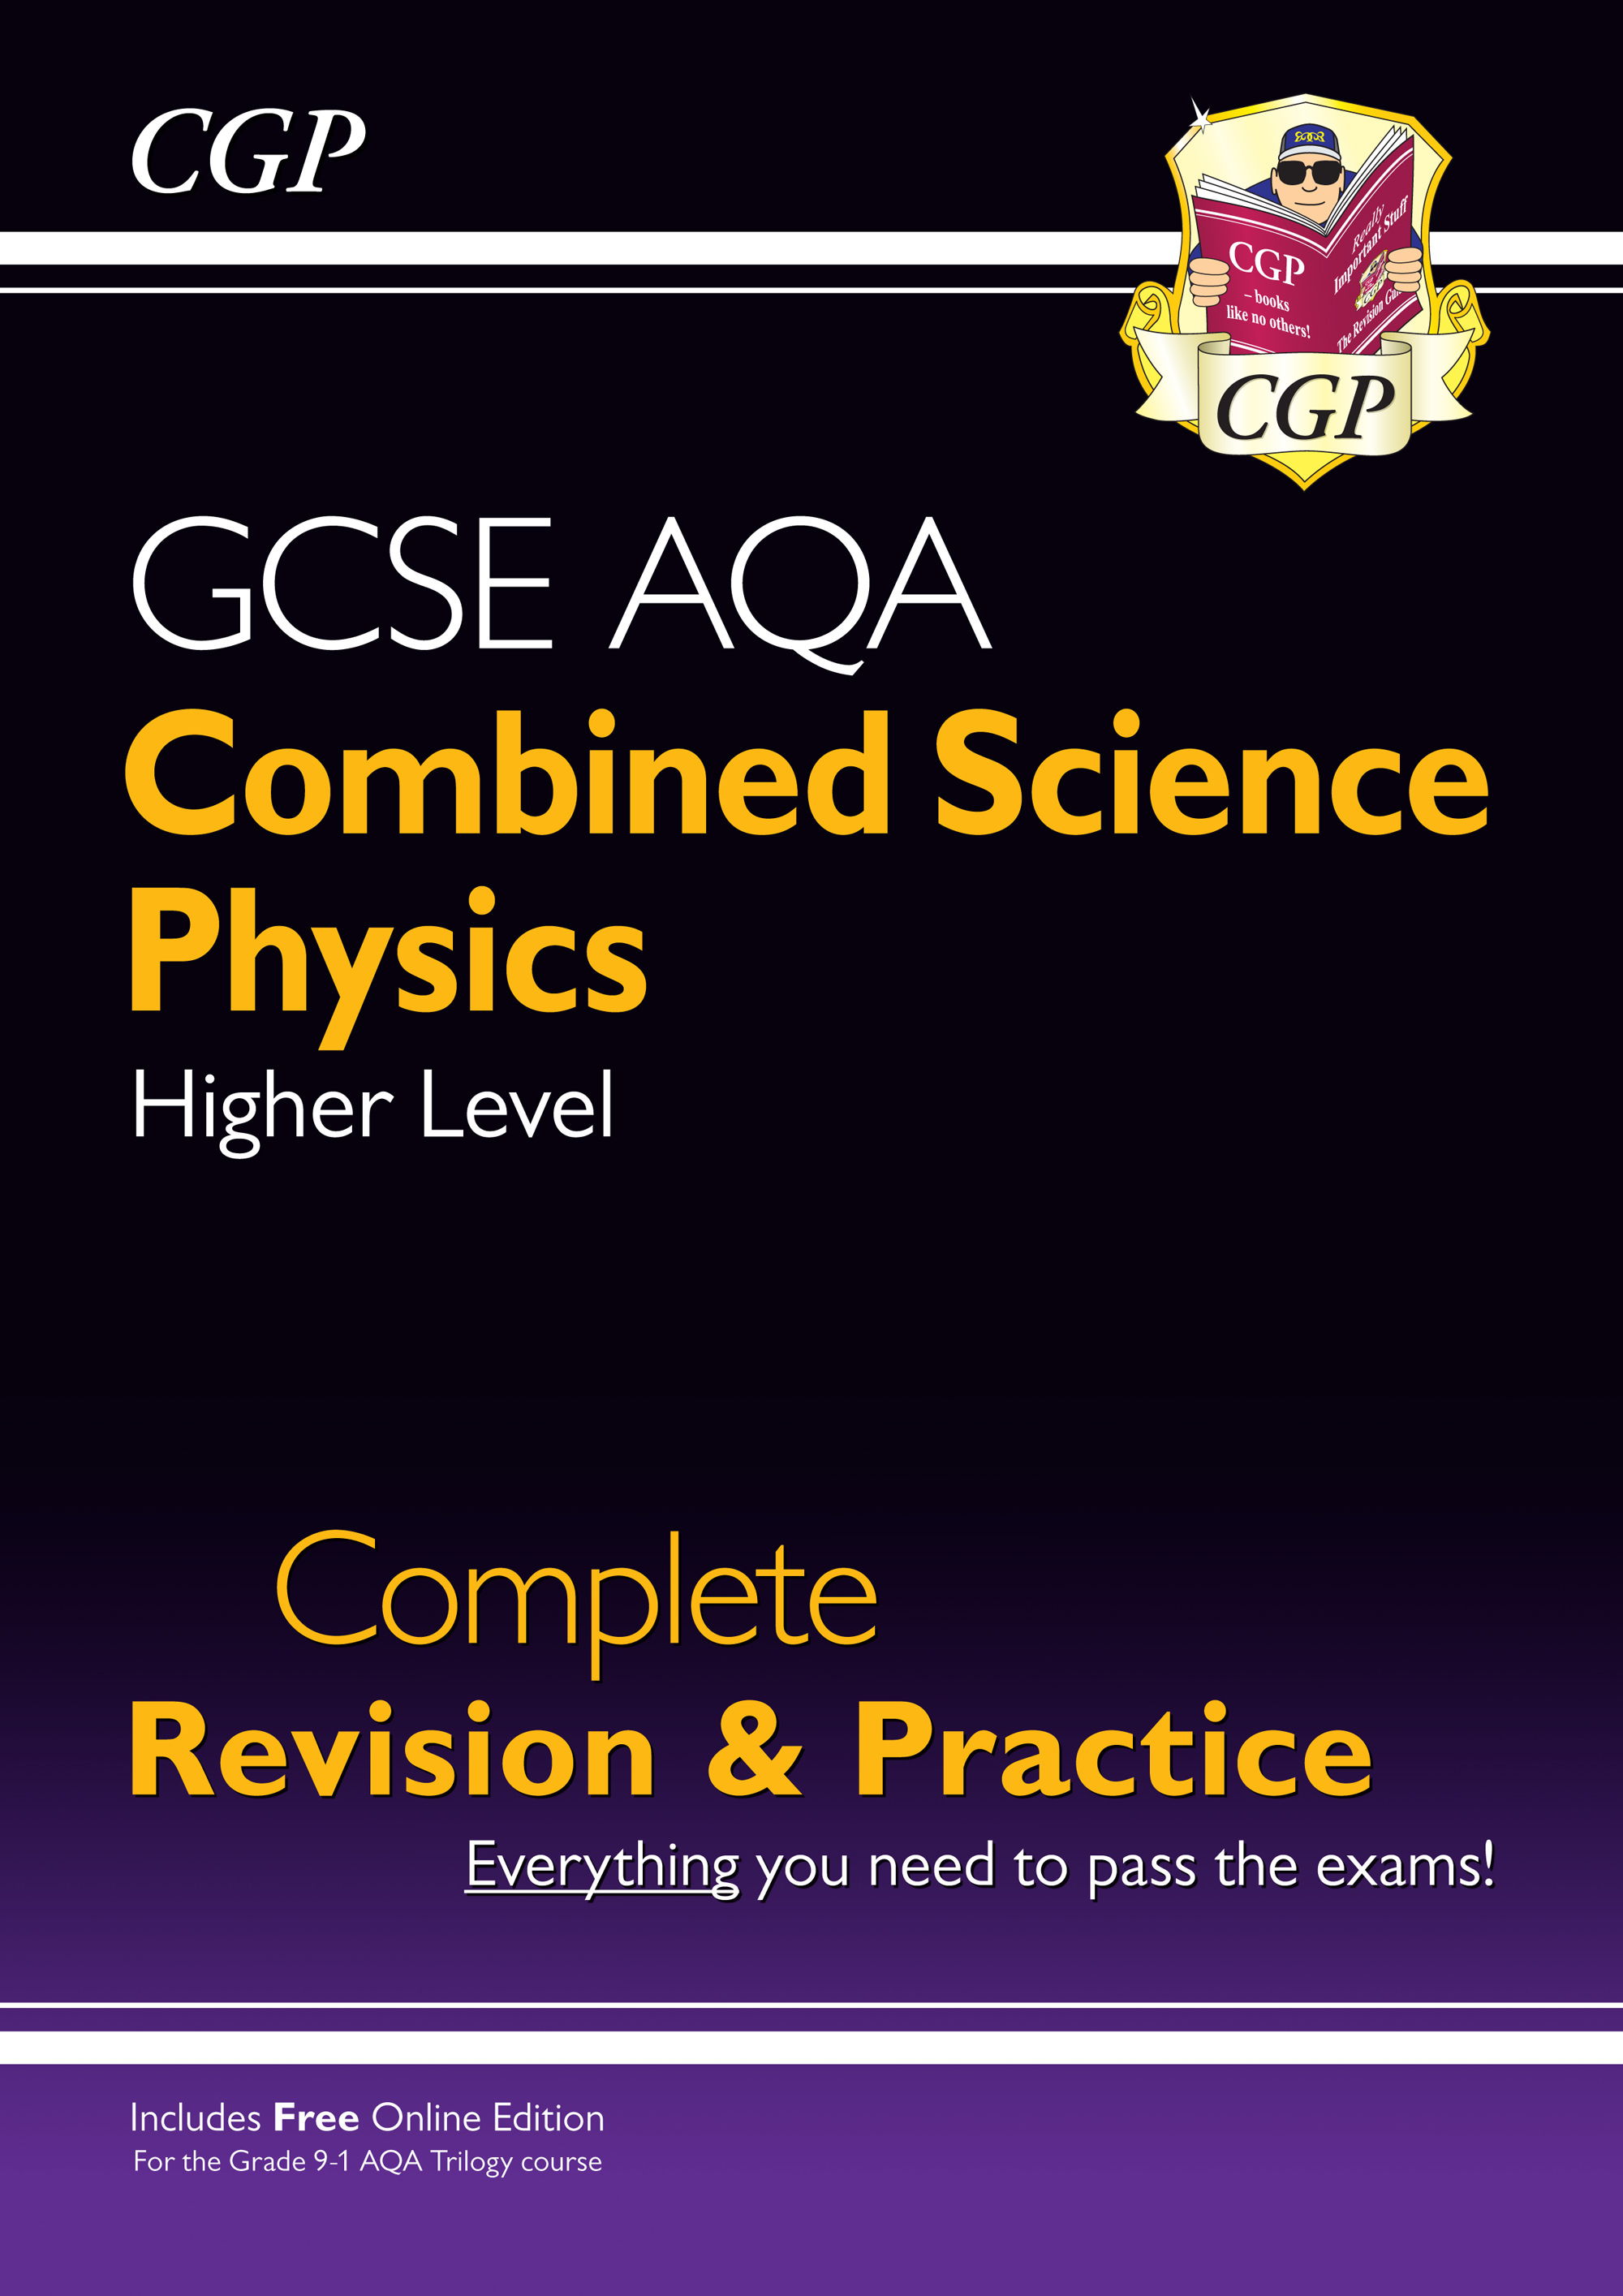 SCPAS41 - 9-1 GCSE Combined Science: Physics AQA Higher Complete Revision & Practice with Online Edi